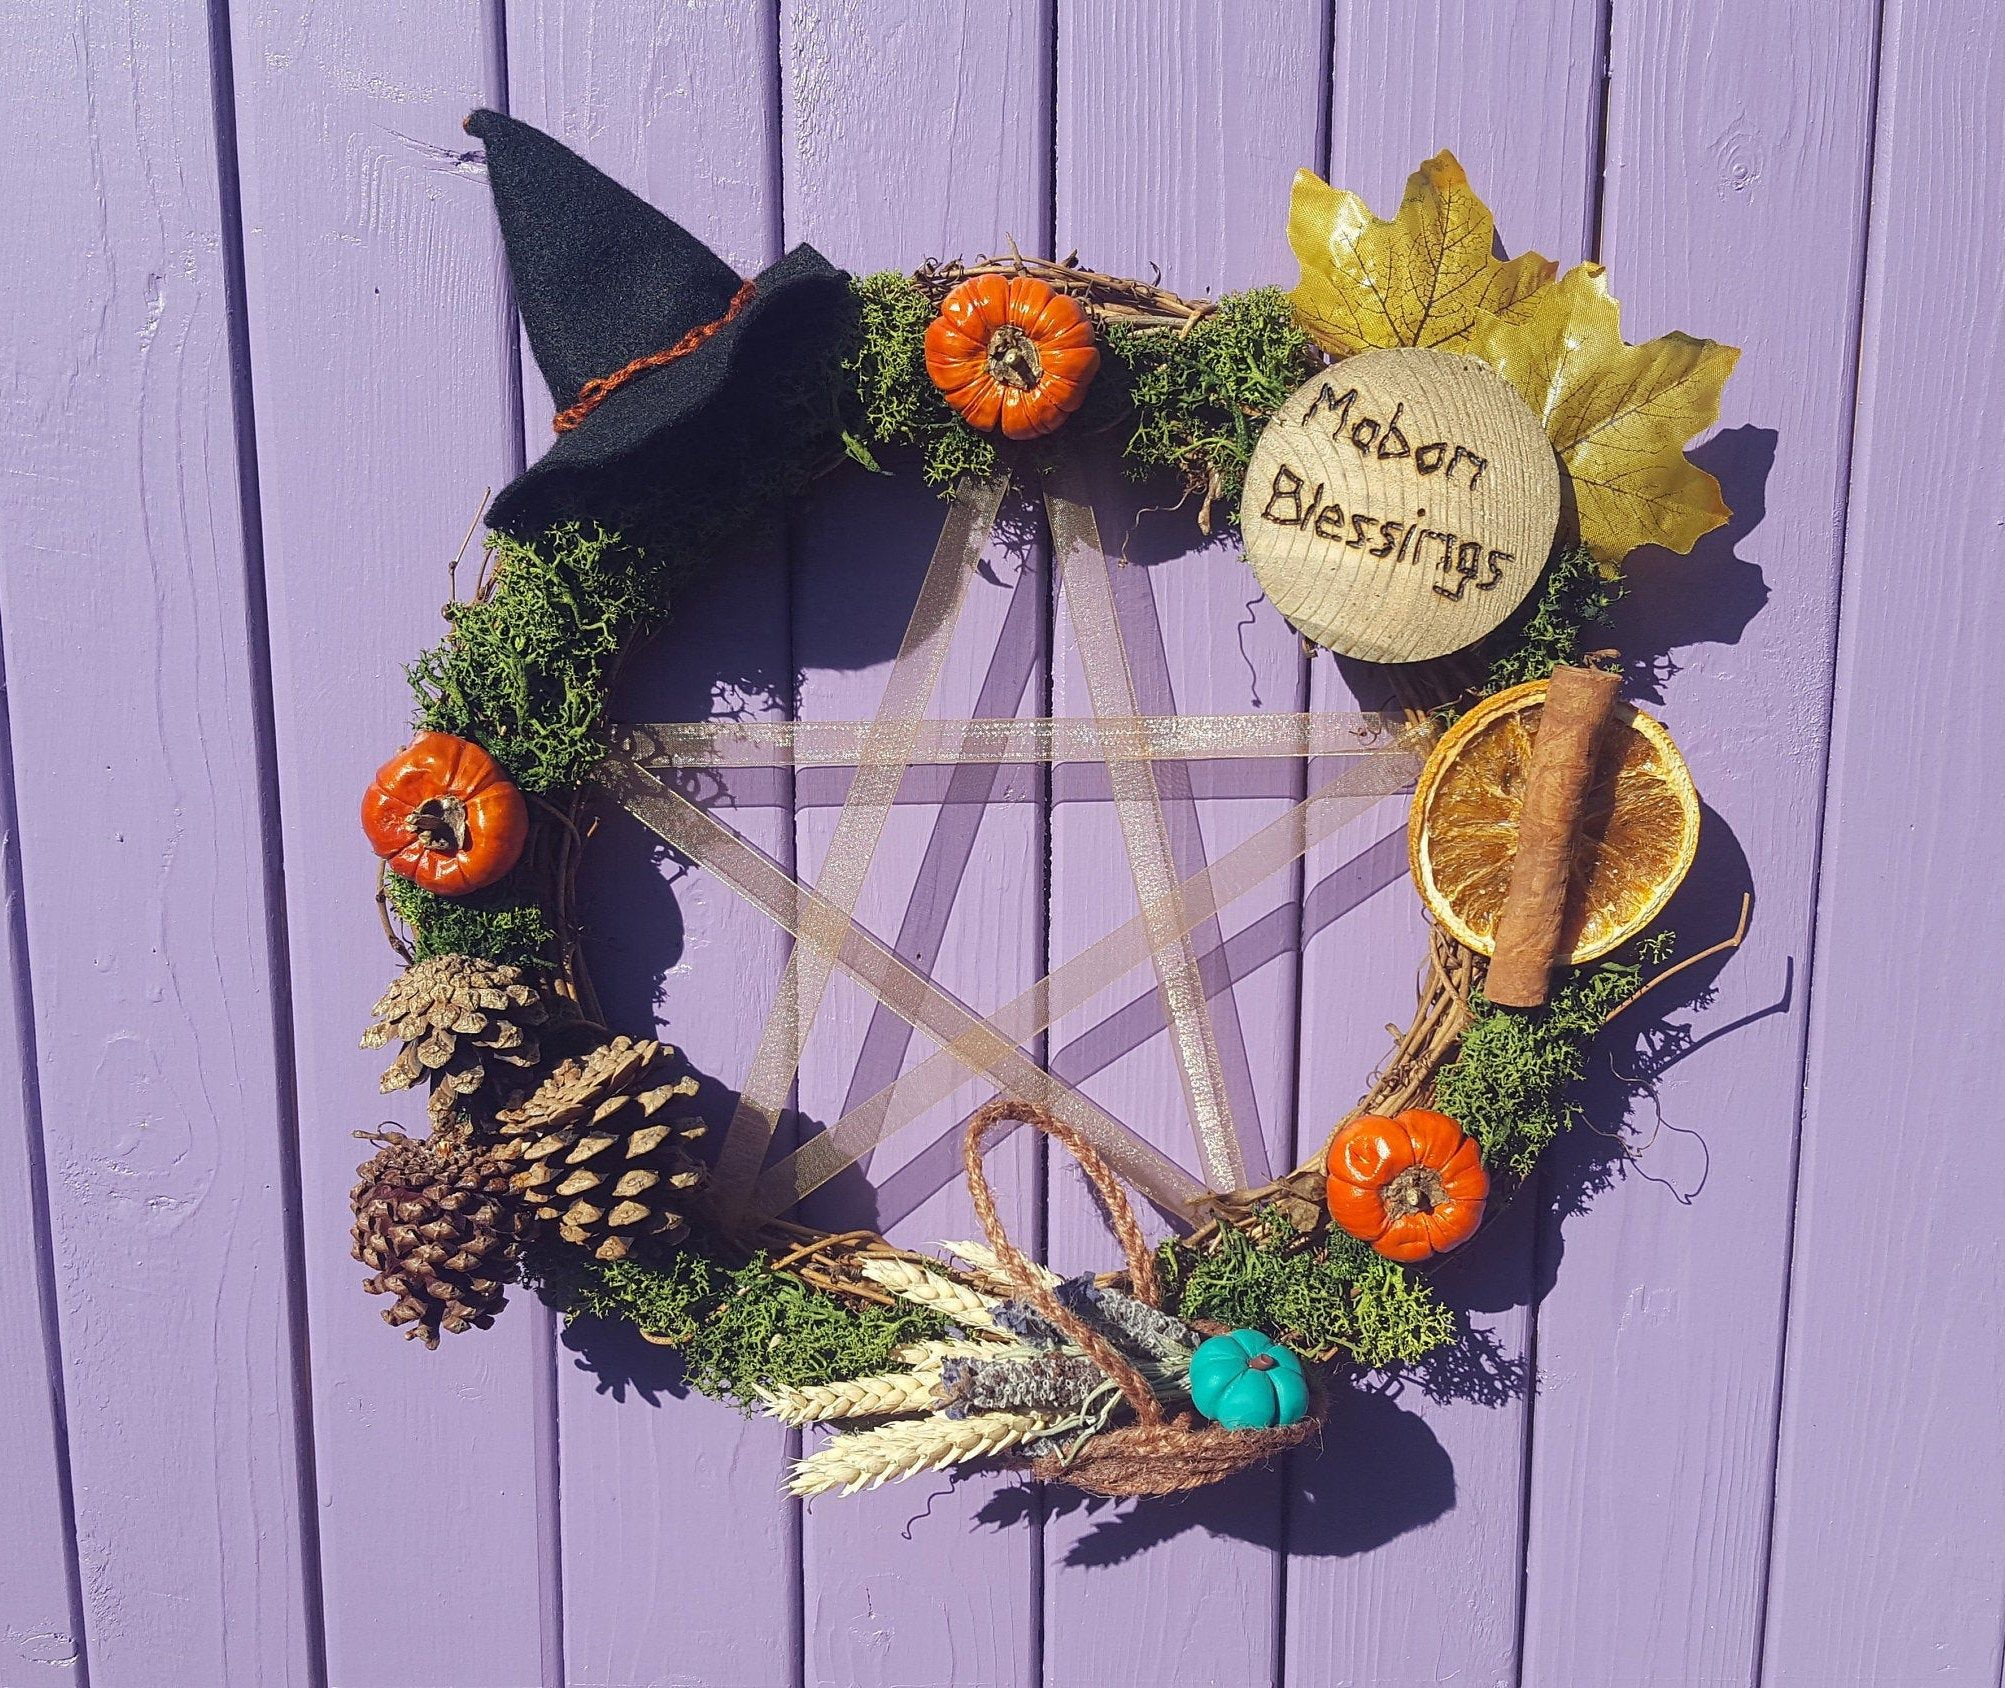 Mabon Autumn Wreath, Ribbon Pentagram, Autumnal Equinox, Wheat Decoration, Dried Lavender, Black Felt Witch Hat, Wiccan Wall Hanging